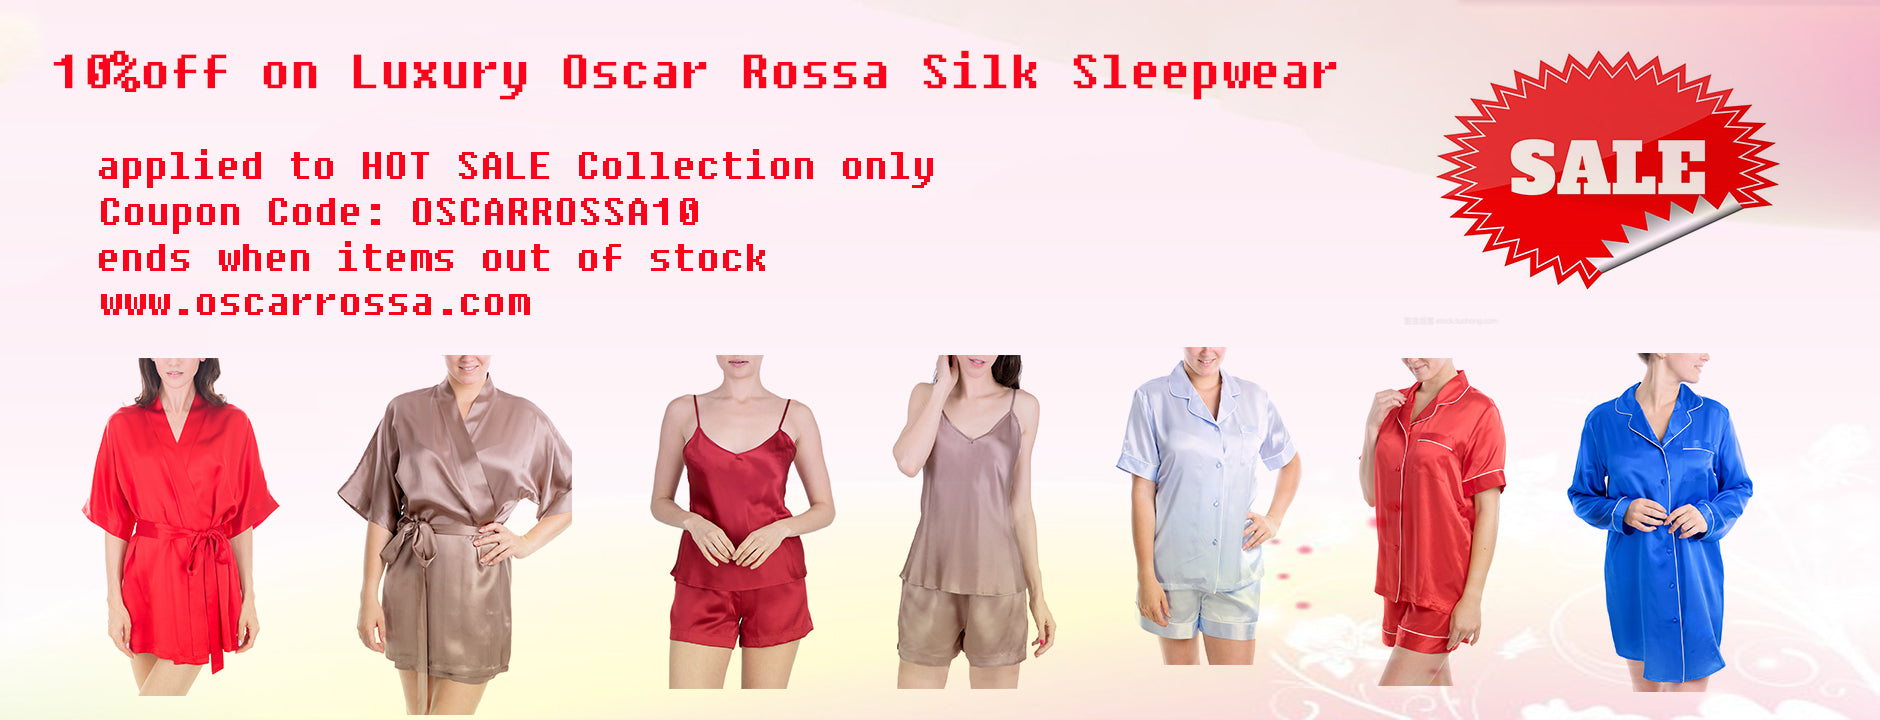 Oscar Rossa Coupon Code and Promotion